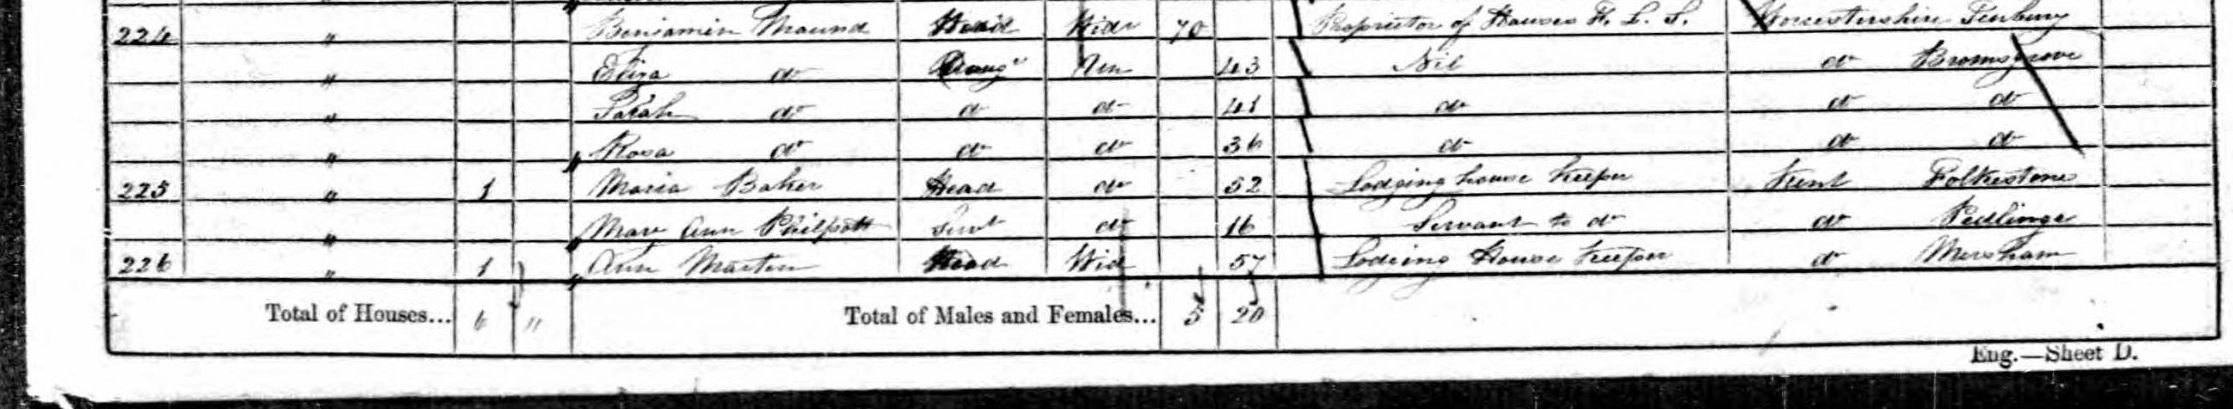 Benjamin Maund and his family on the 1861 Census